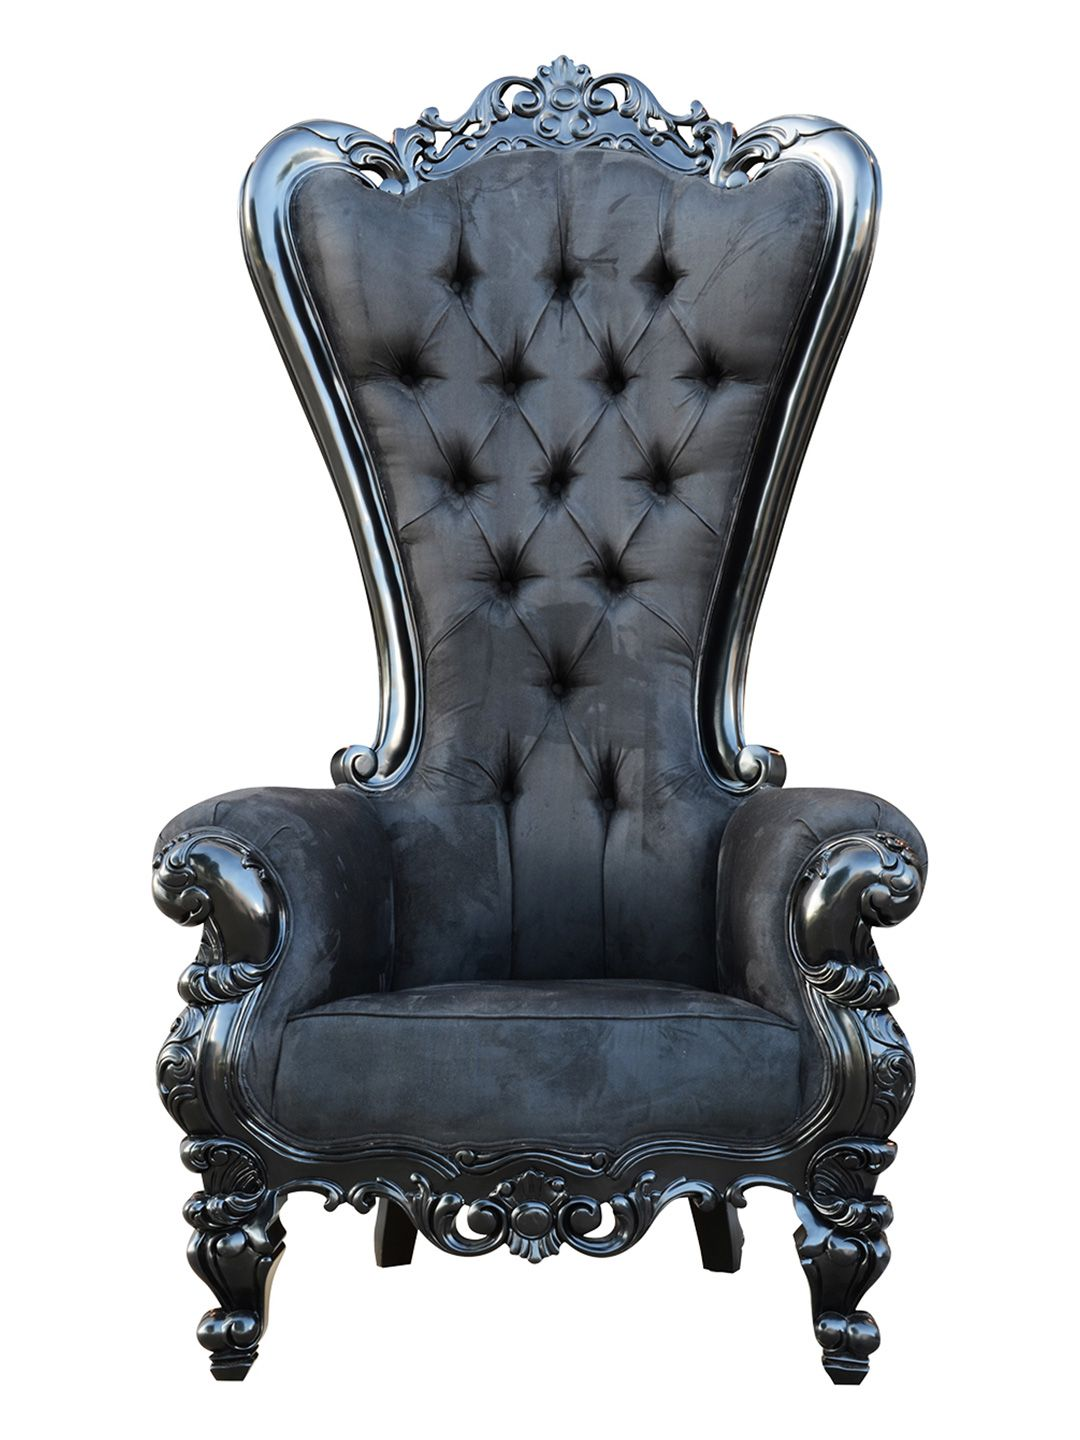 Black Gothic Throne Chair Baby Vibrating Elvira By Oh My Goth At Gilt 더성